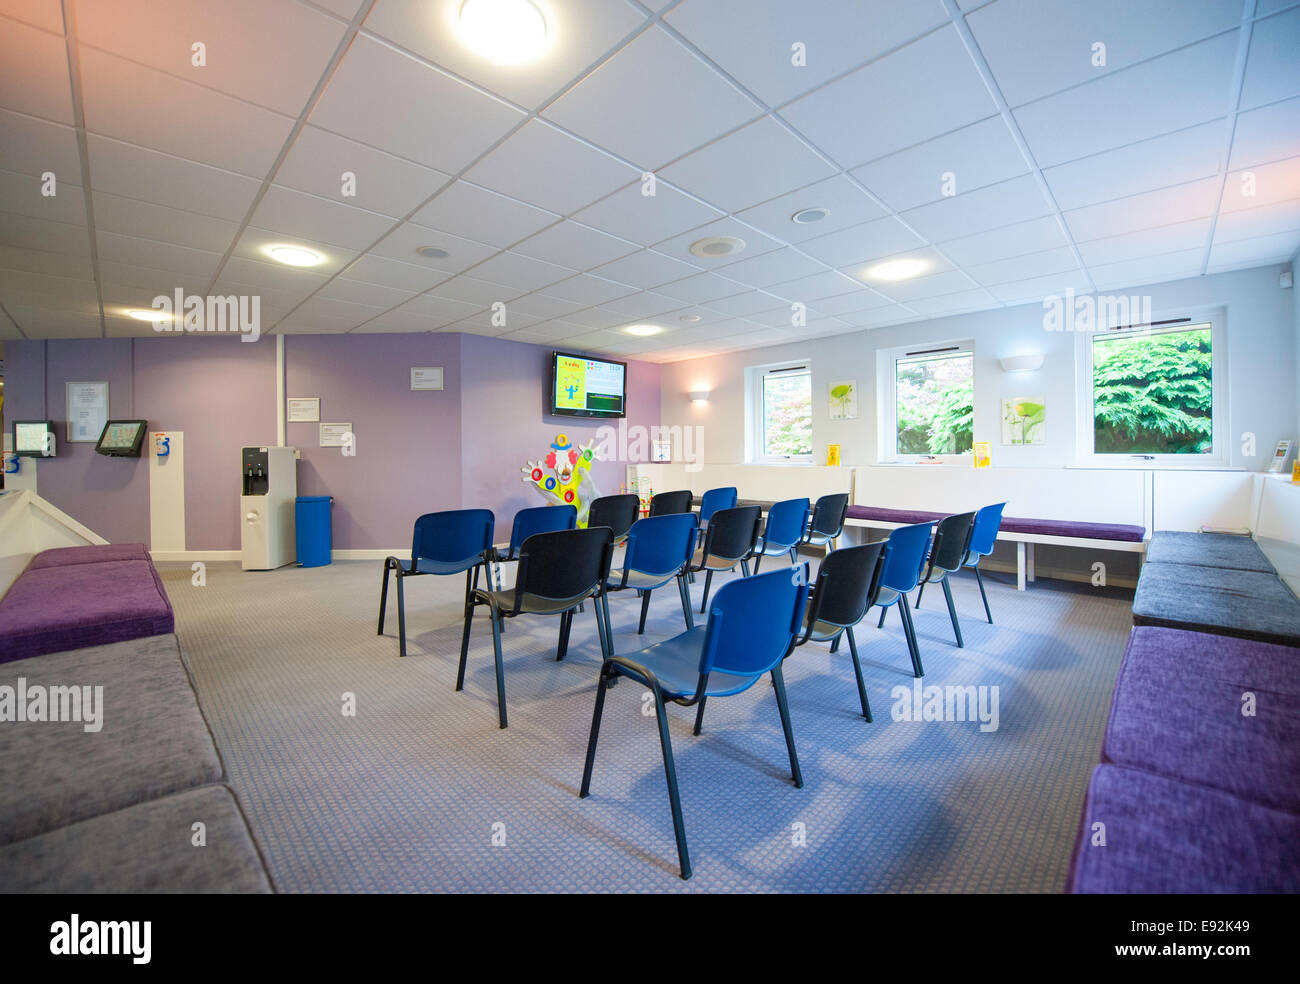 Doctor's waiting room private healthcare - Stock Image